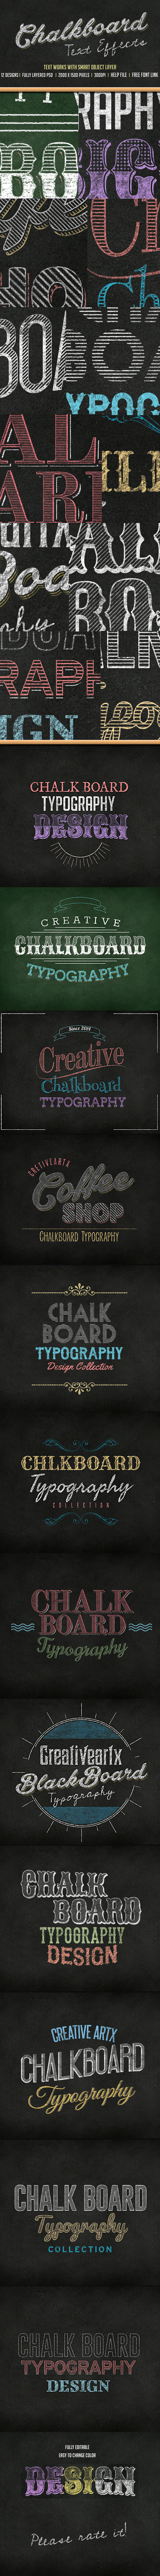 Chalkboard Text - Text Effects Actions